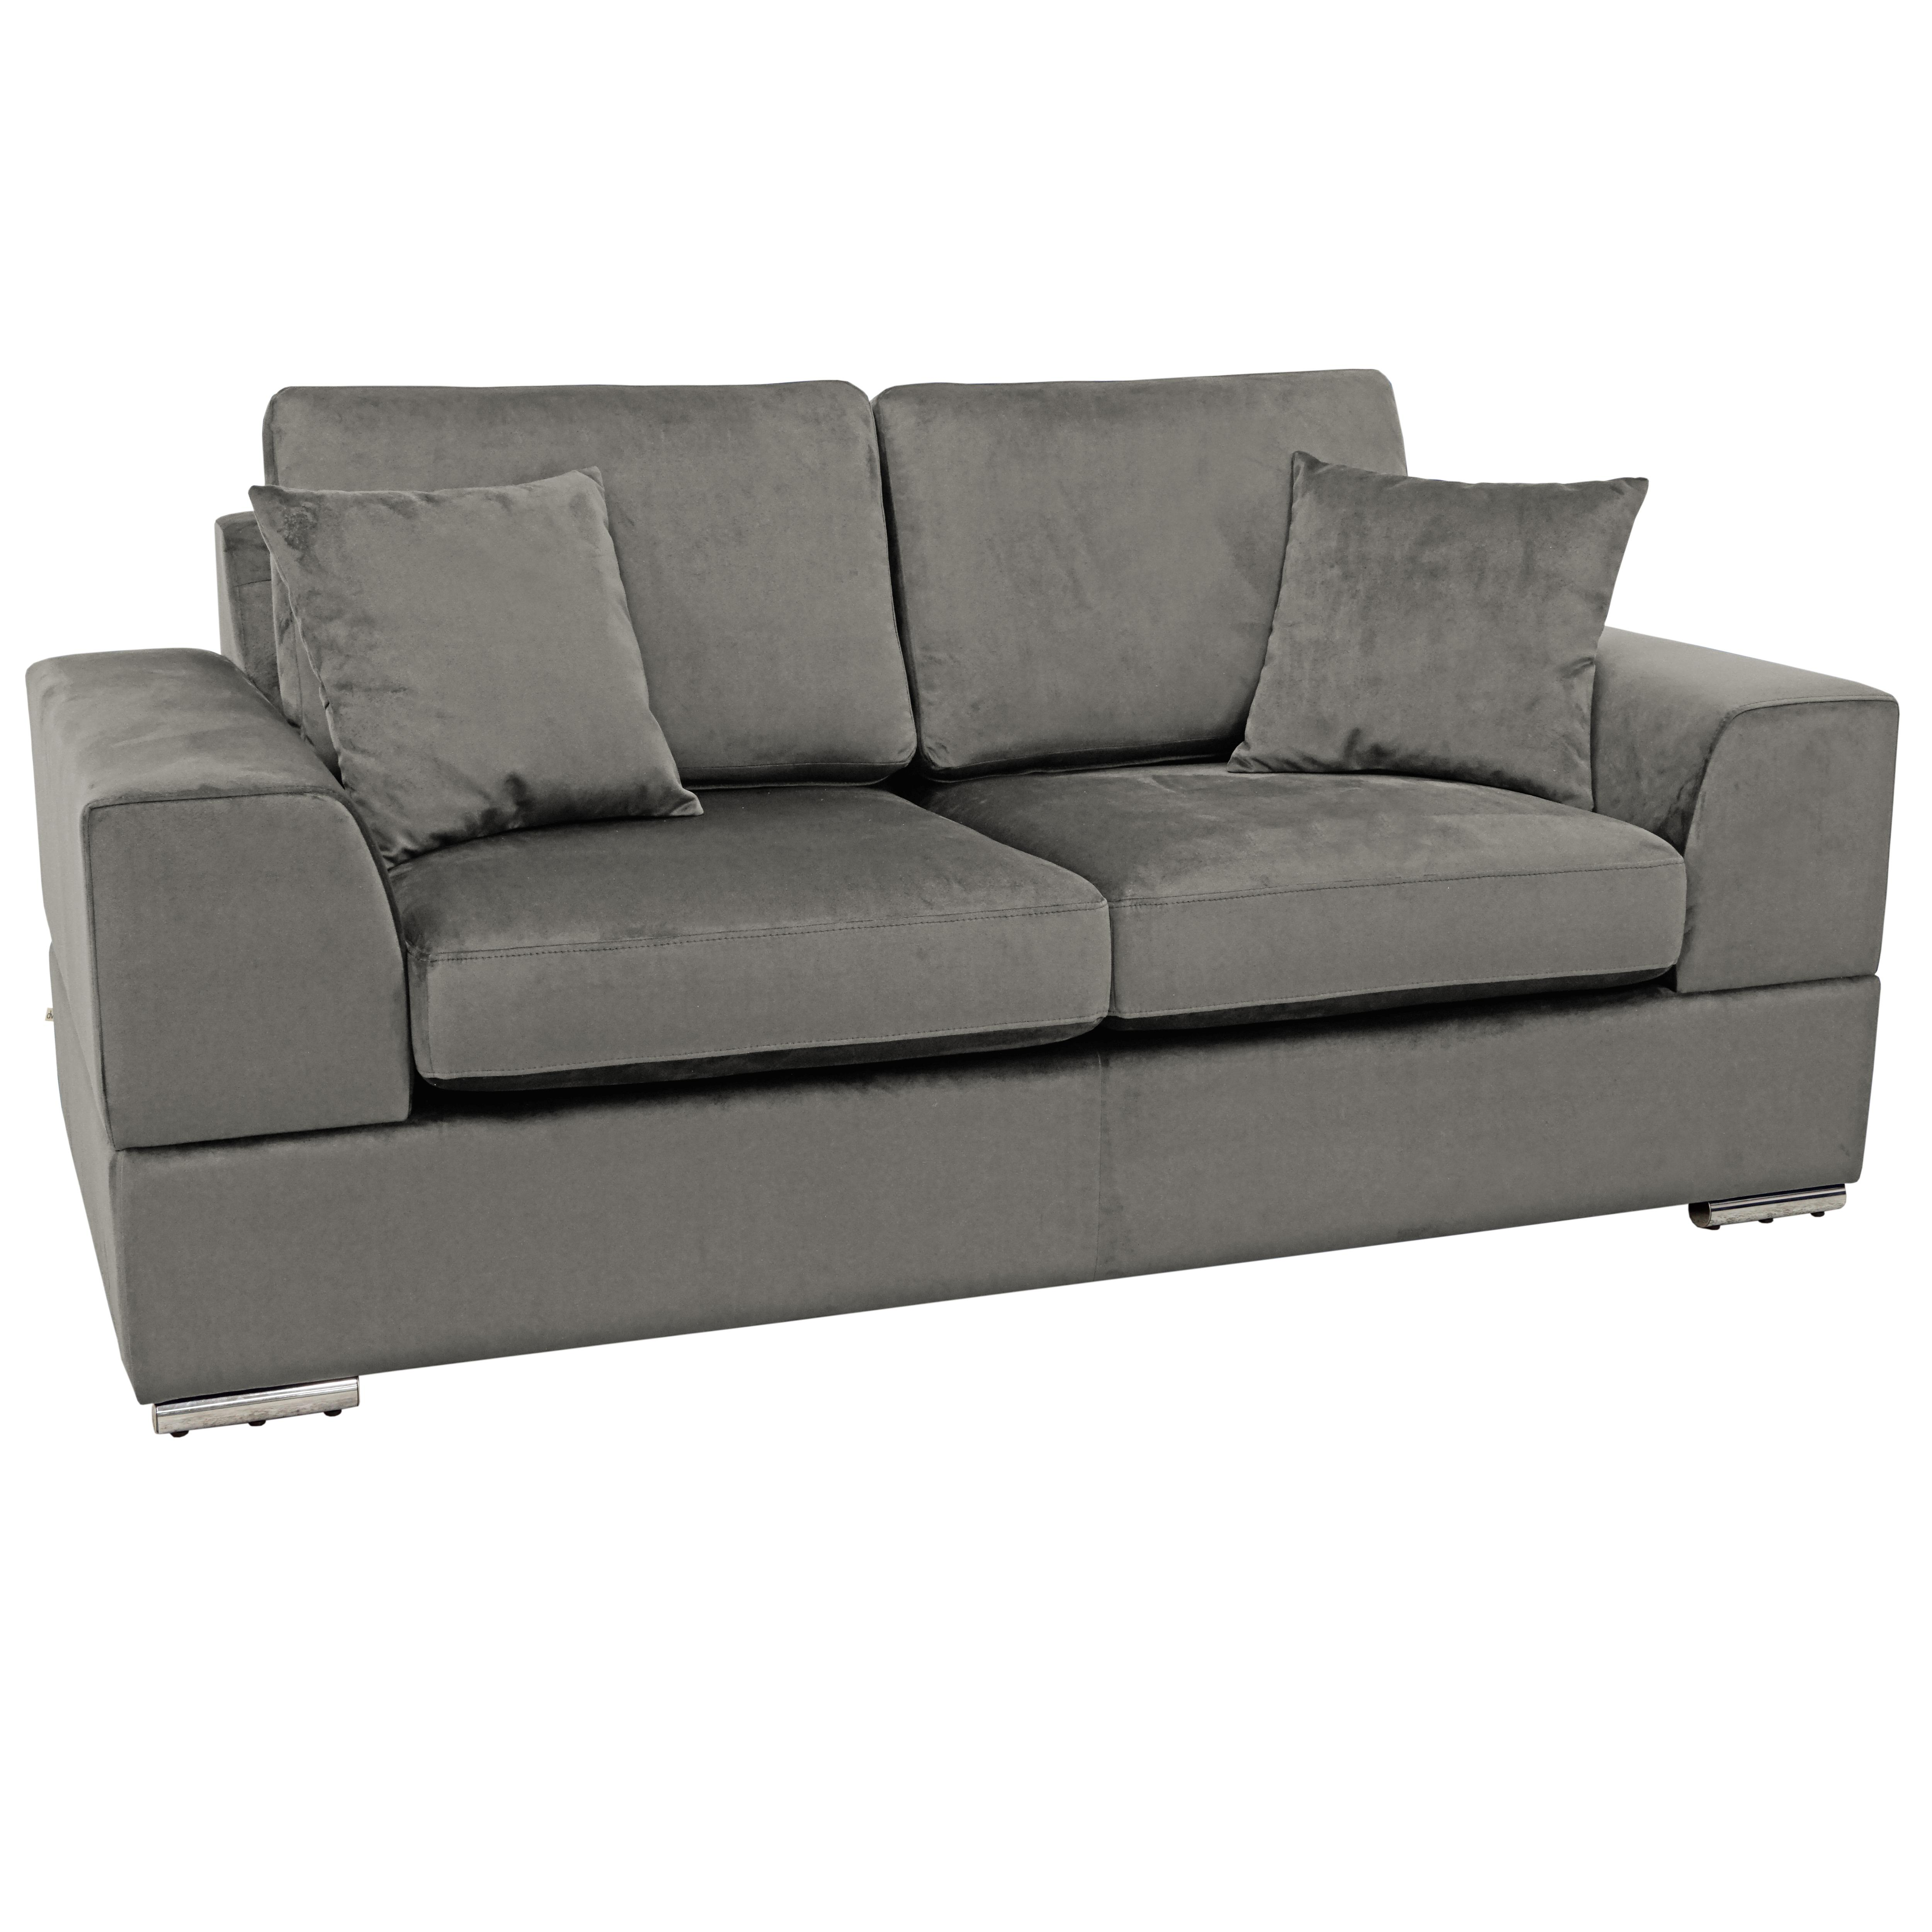 Varenna two seater sofa alba velvet grey